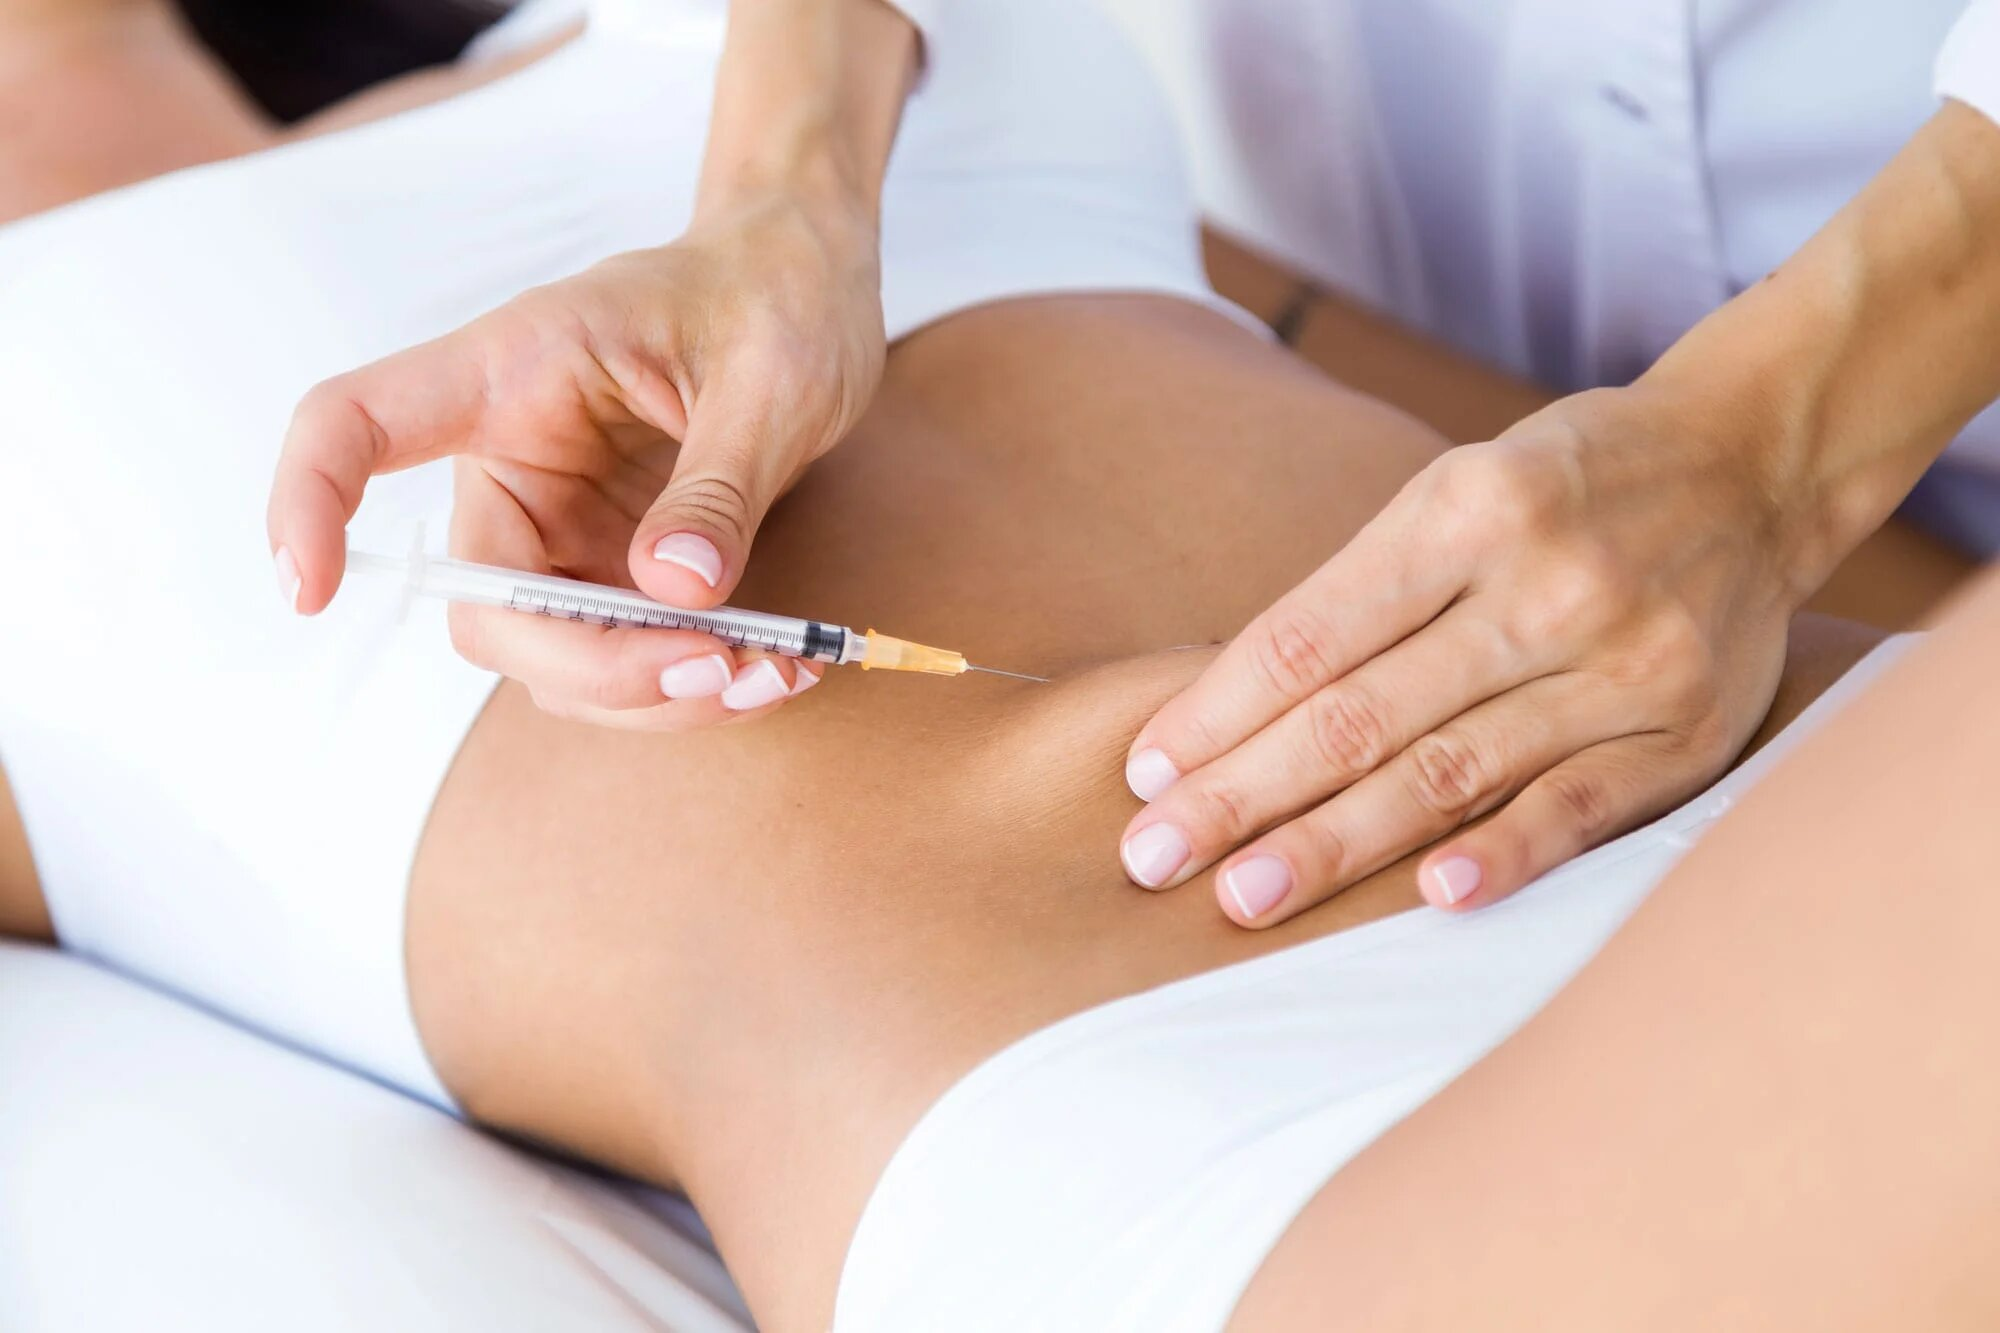 Female patient getting injected with a needle into her abdominal section